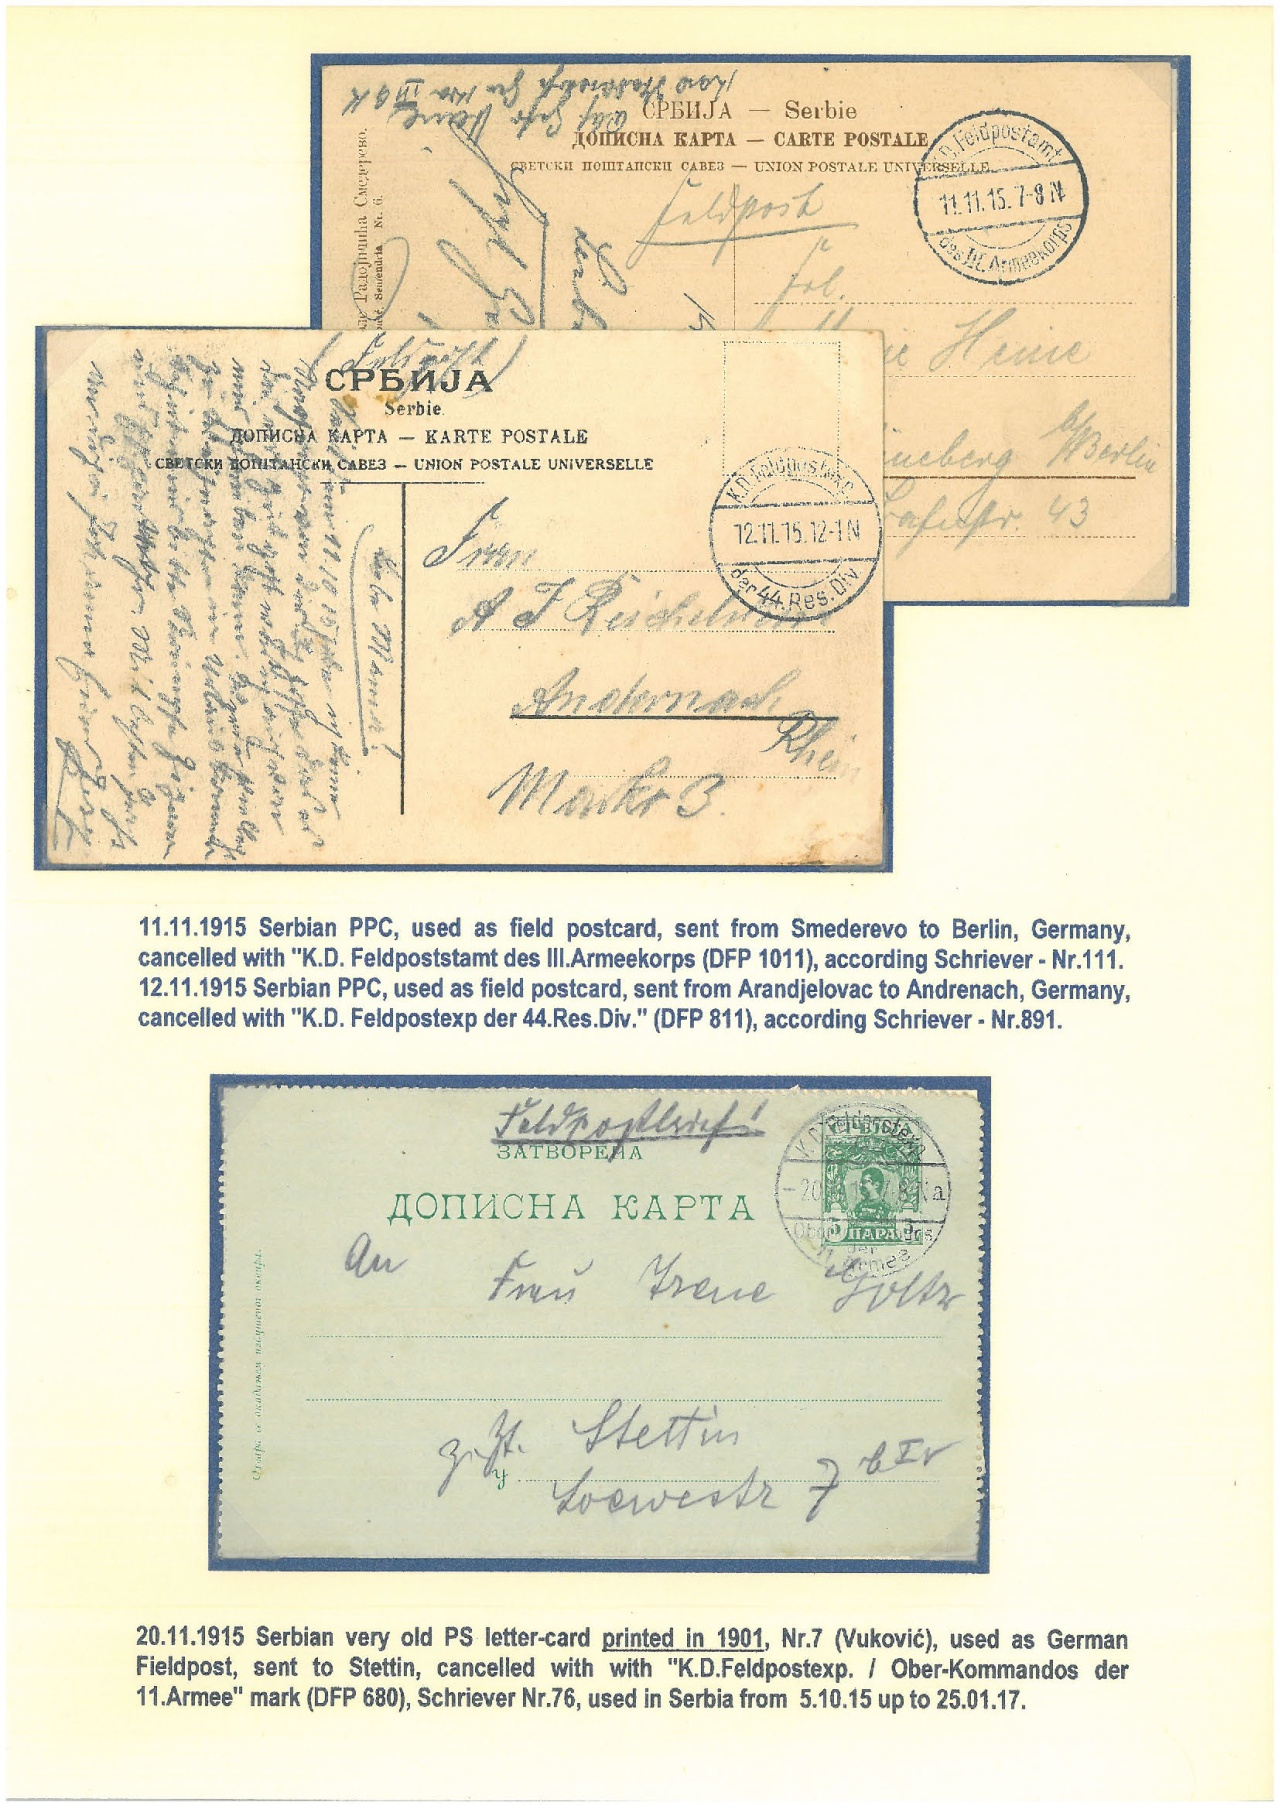 Philatelic Exhibit German Controbution To The Fall Of Serbia